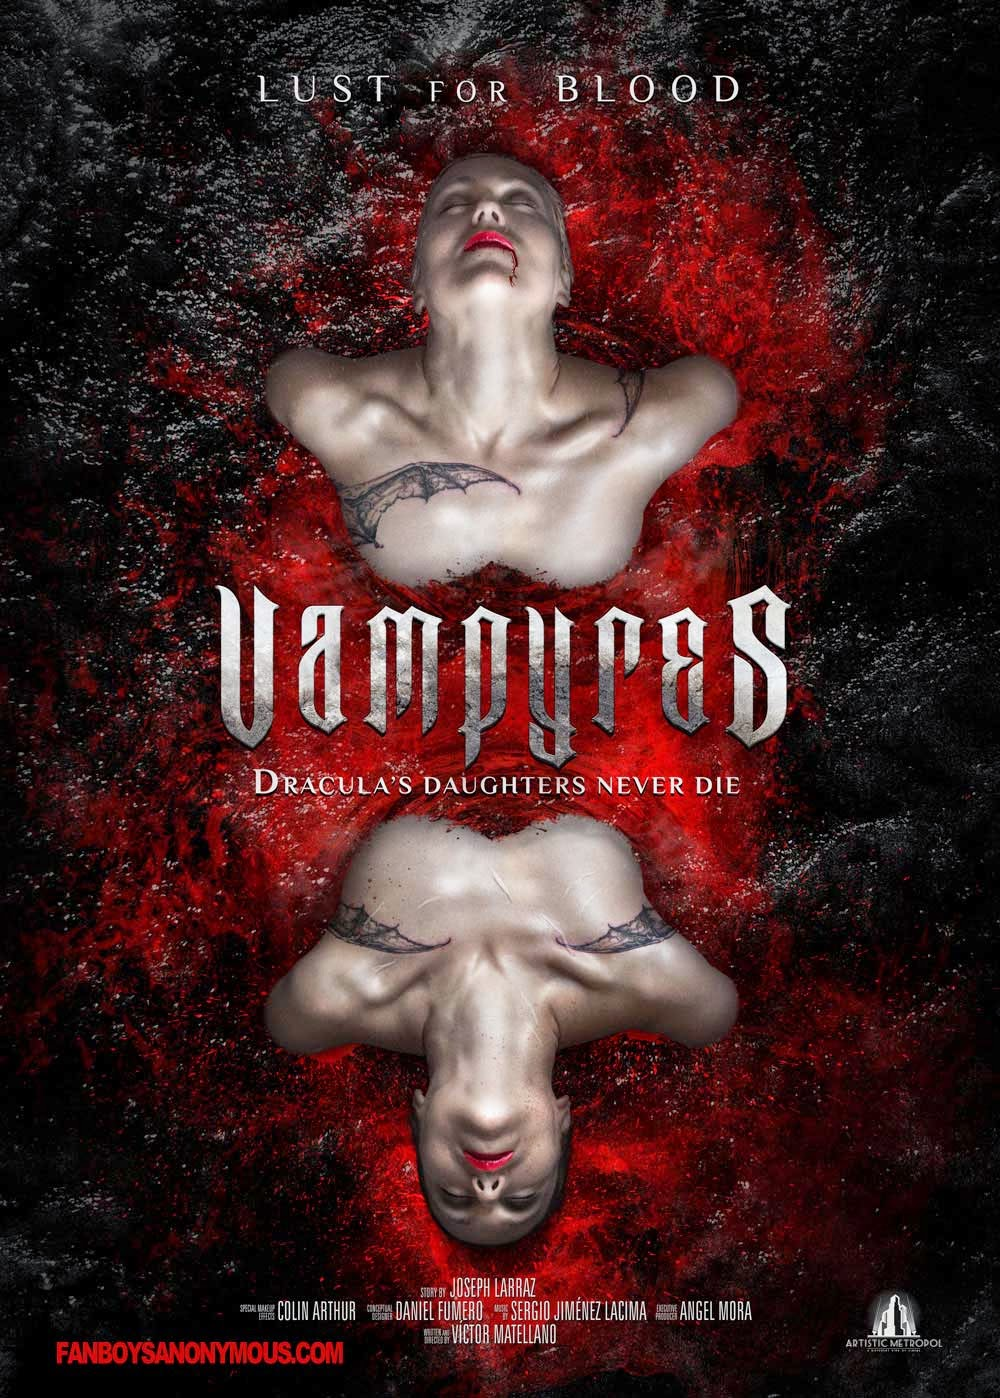 vampires art poster sexy blood horror lust sex